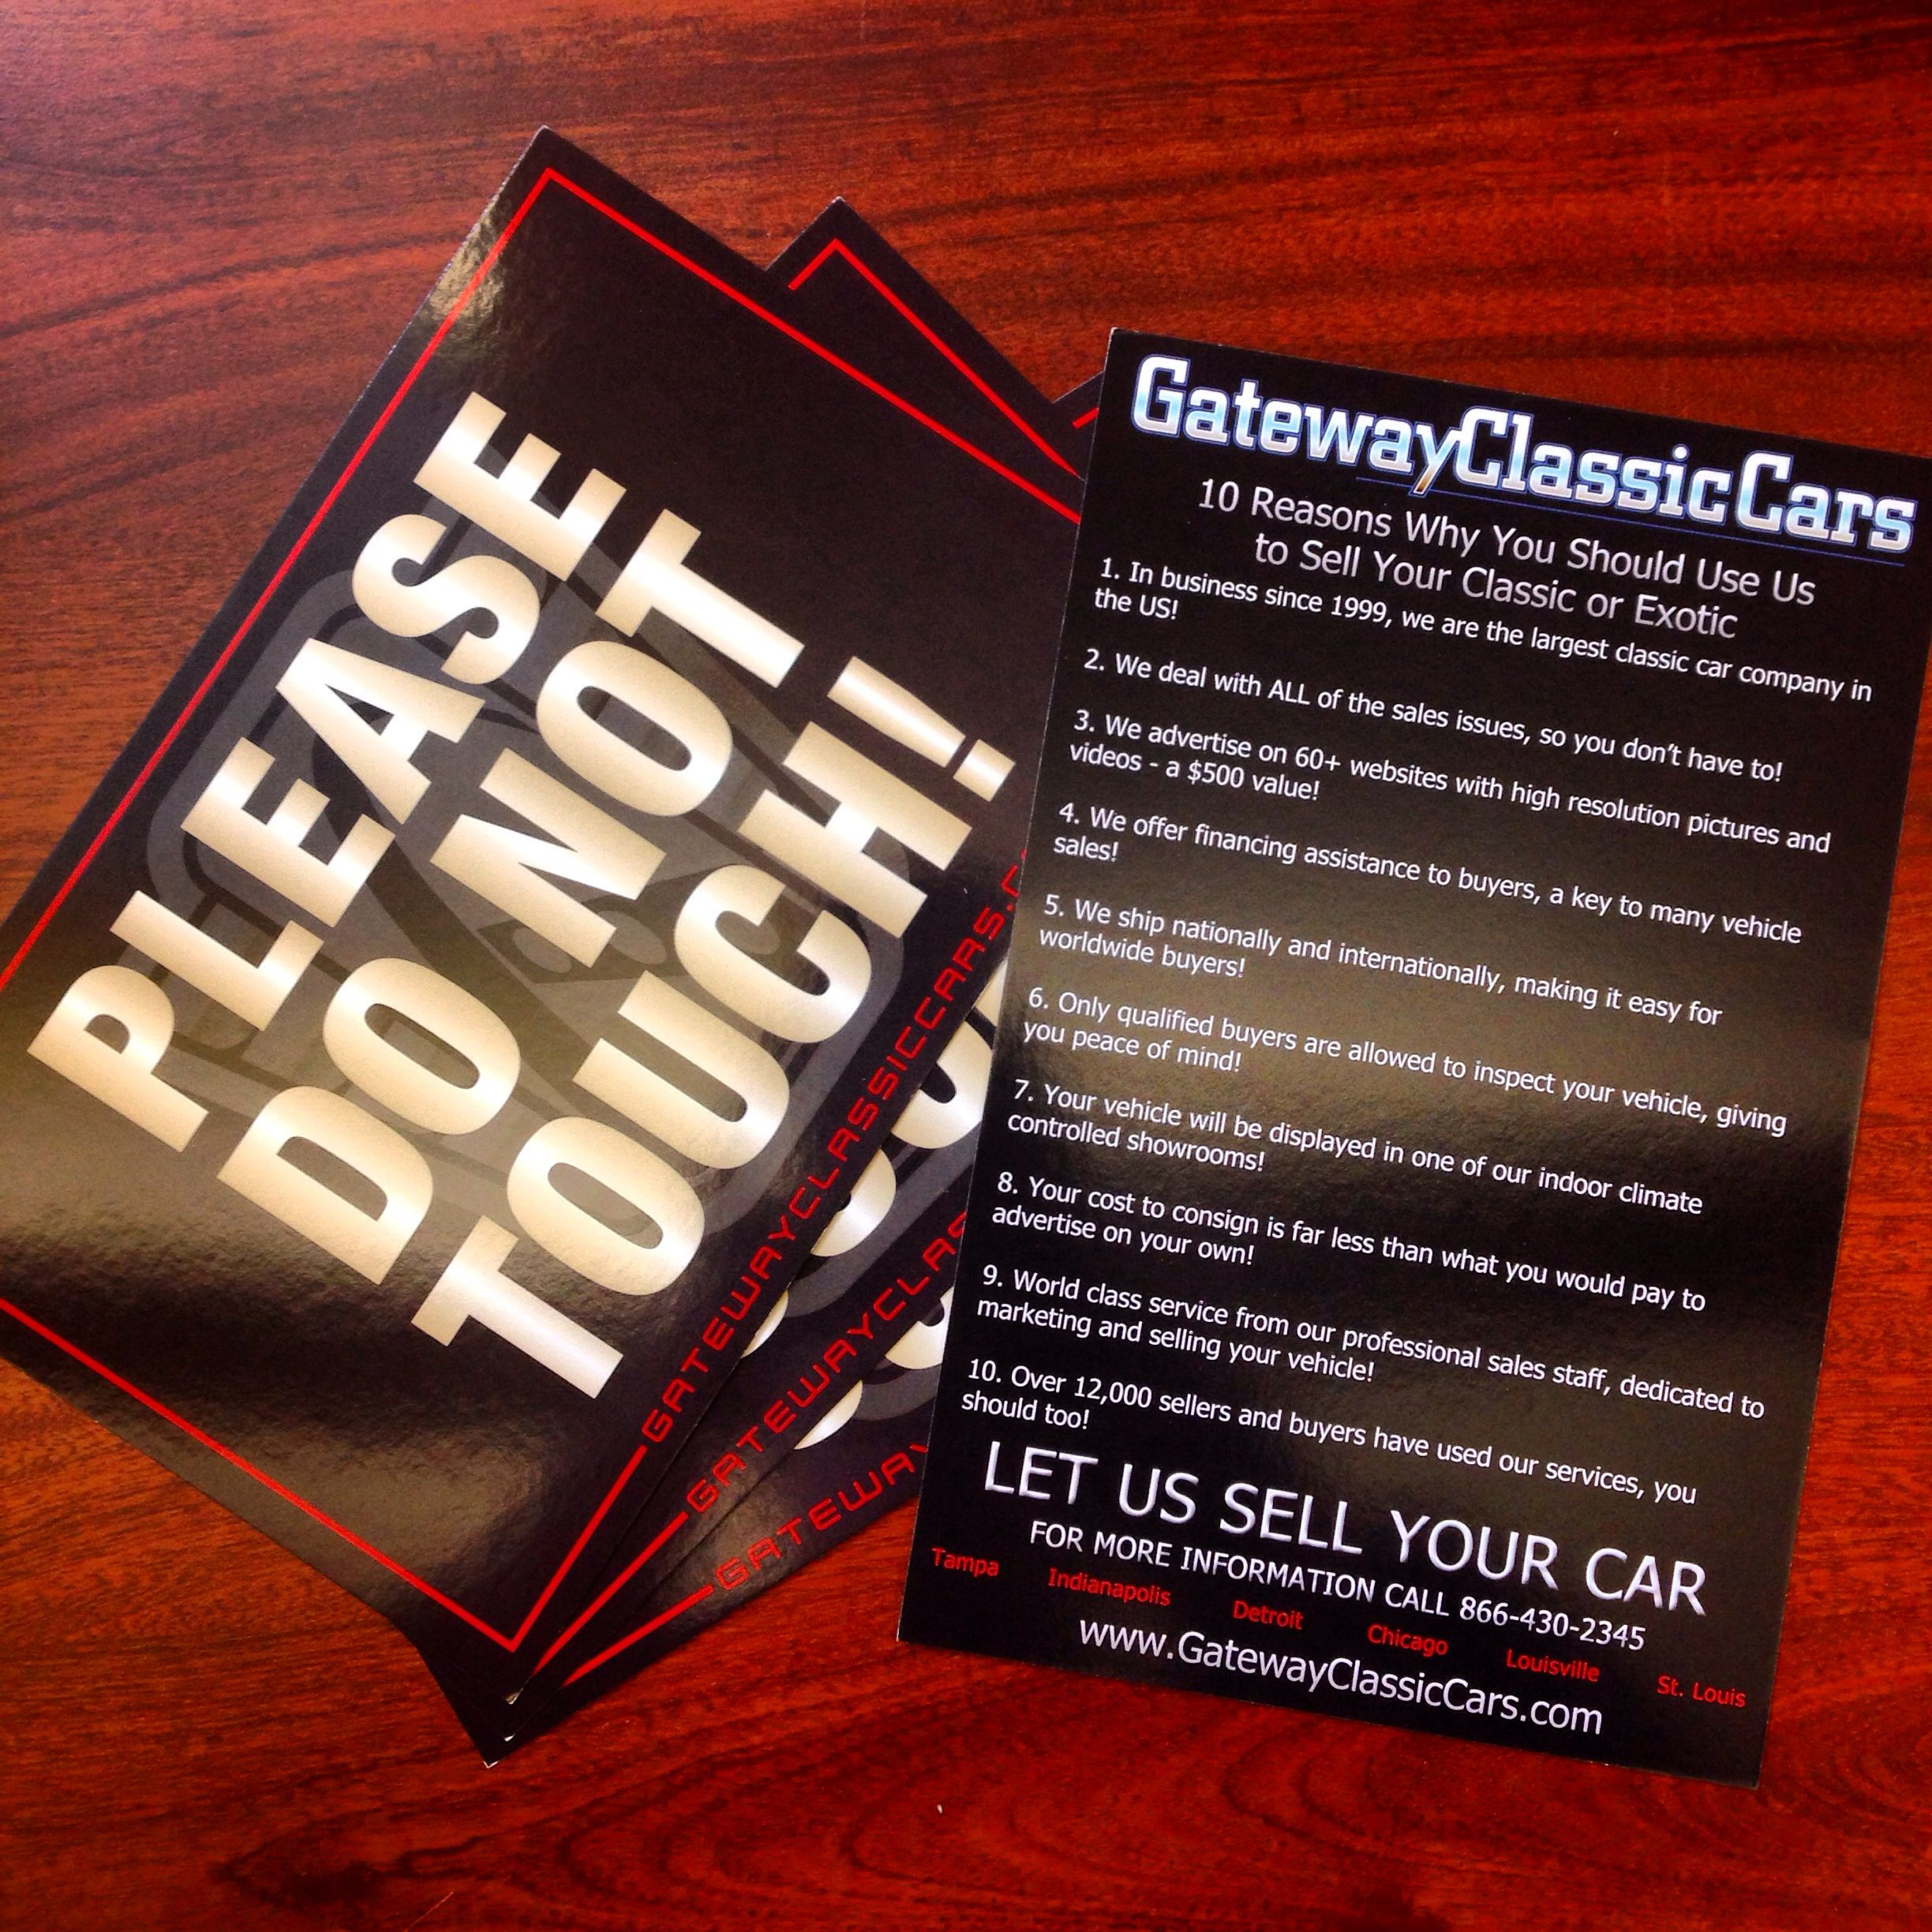 A very special THANK YOU to Gateway Classic Cars for